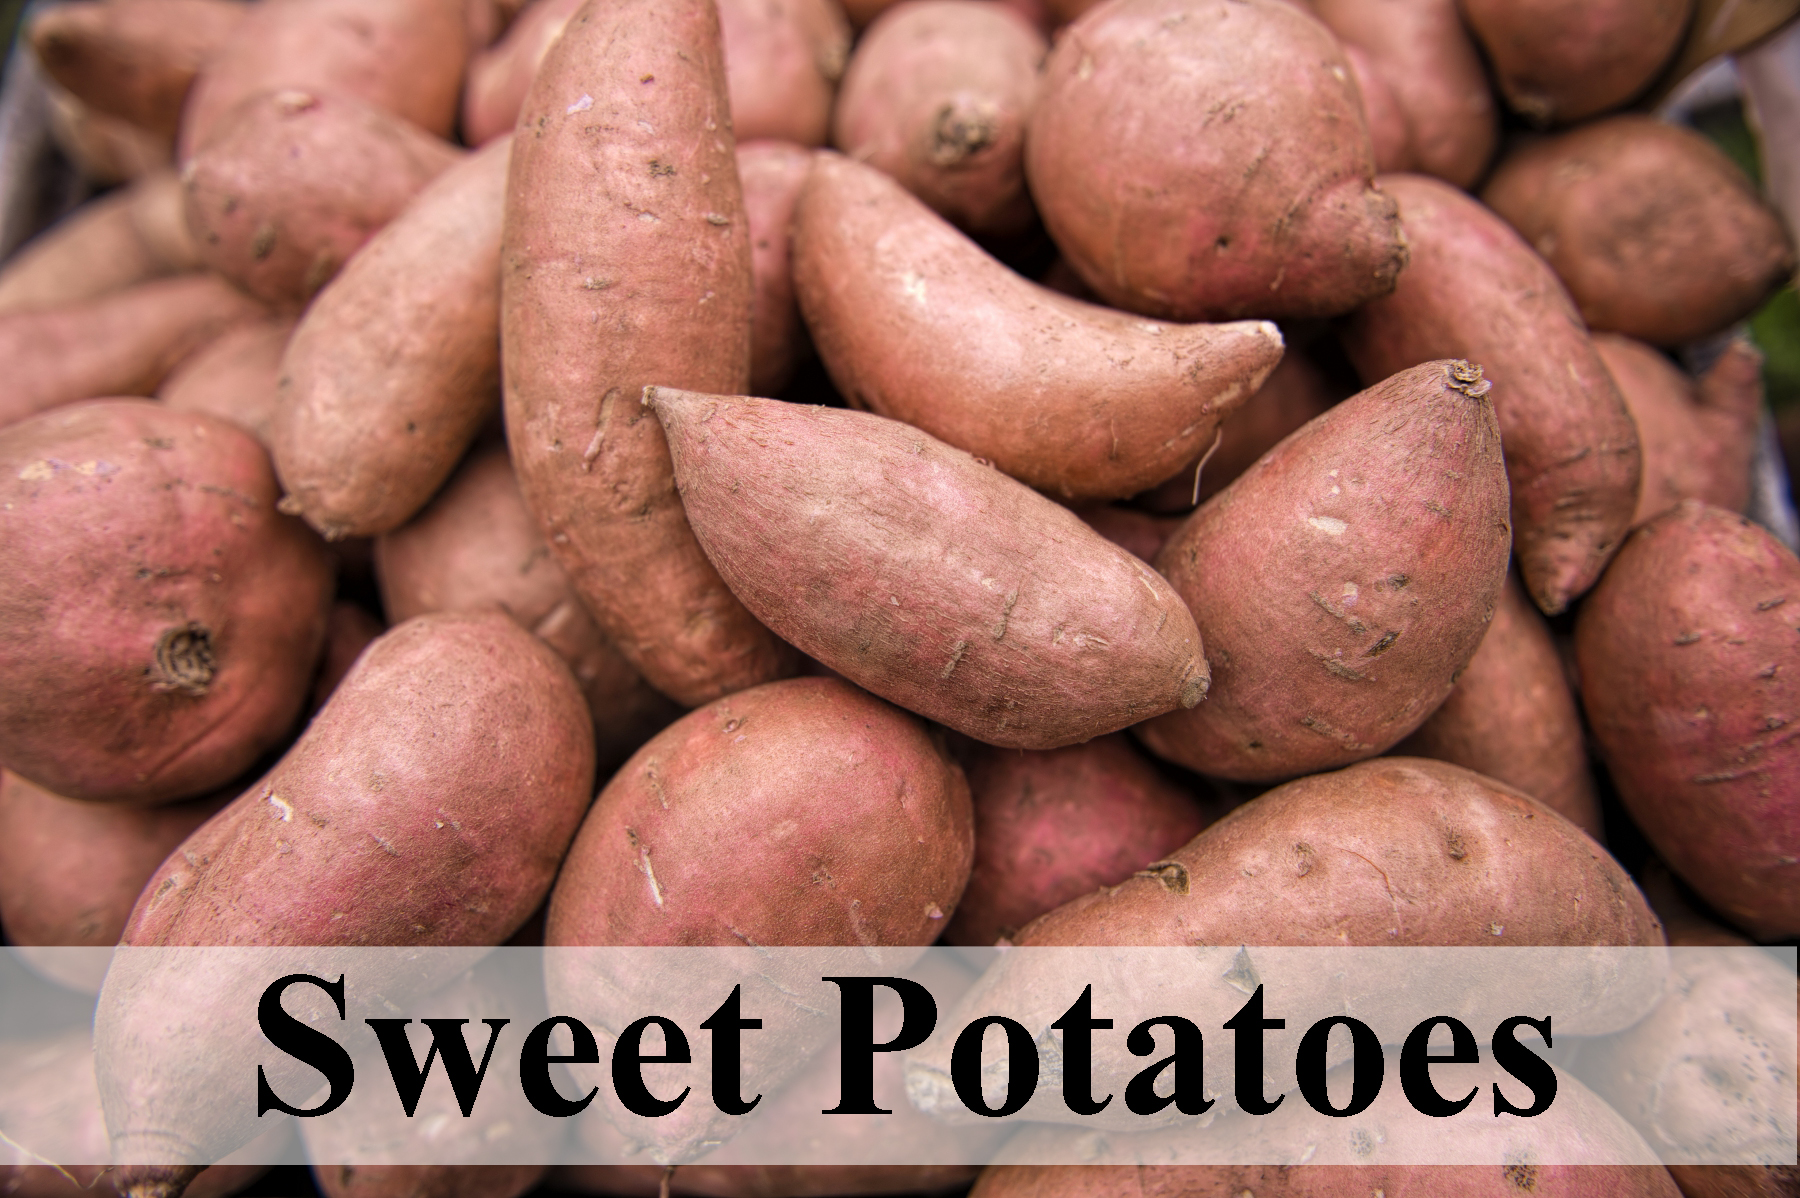 Sweet Potatoes, Healthy food for day to day life healthy food Healthy food for day to day life Sweet Potatoes